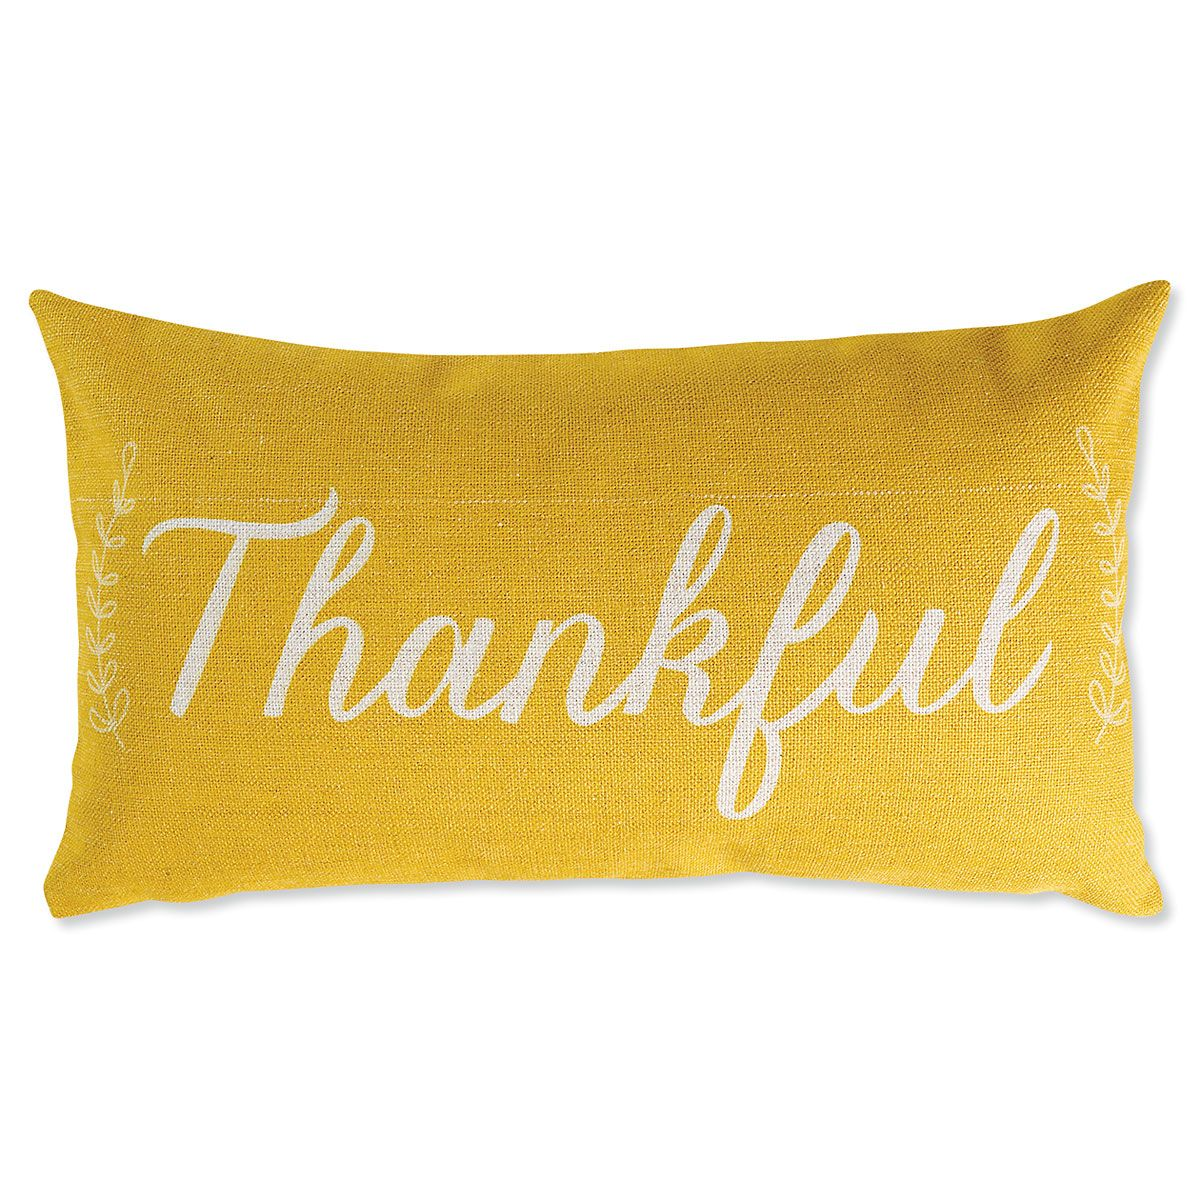 Thankful, Grateful, Blessed Pillows